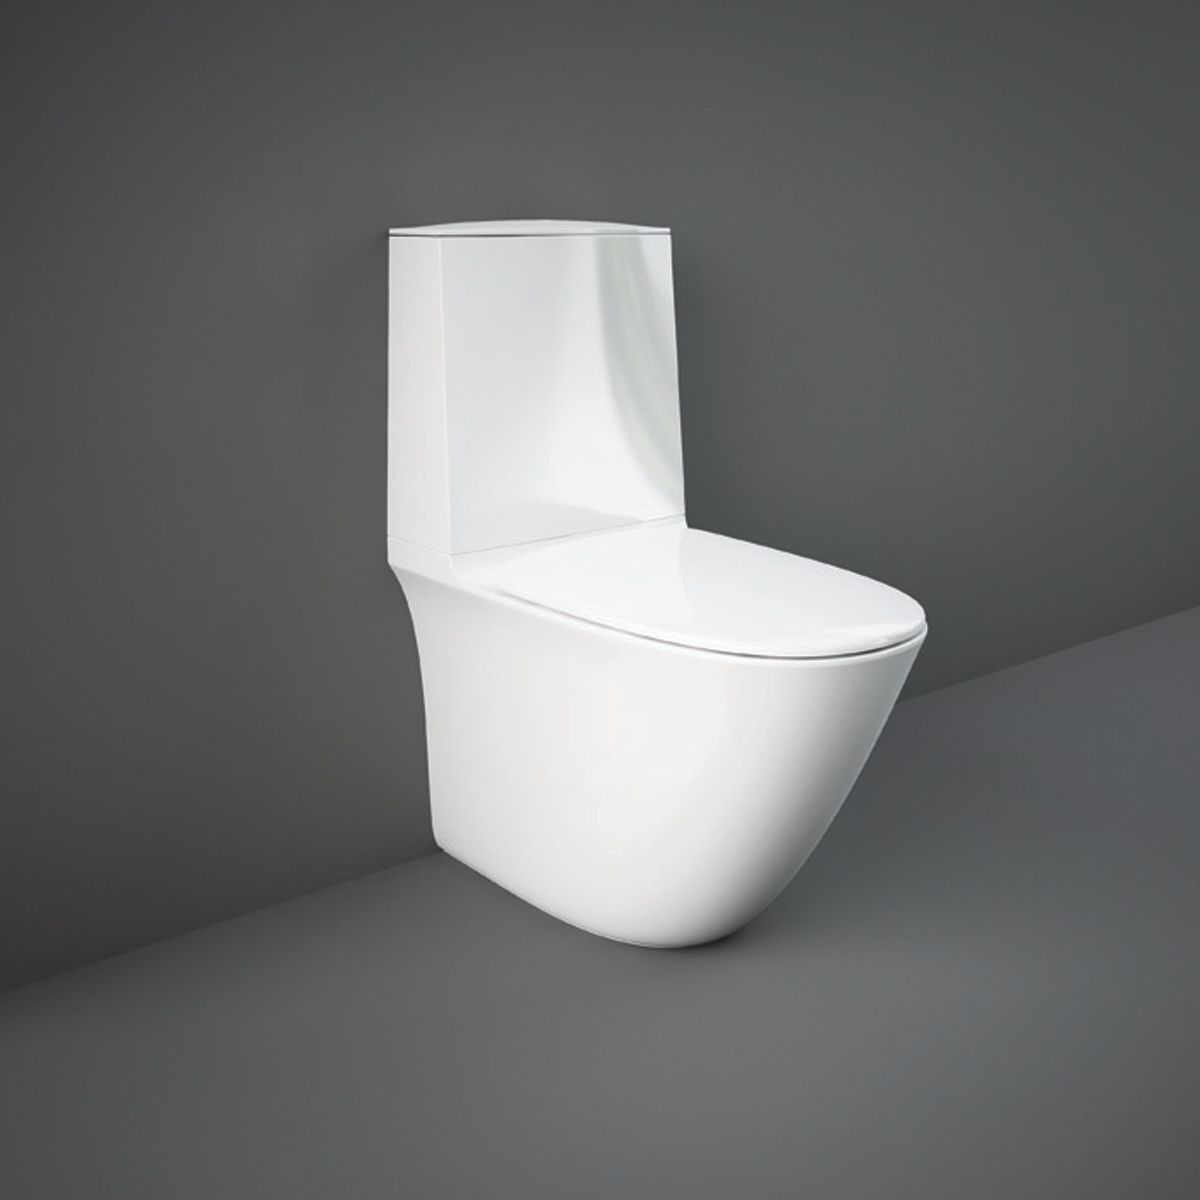 RAK Sensation Close Coupled Back To Wall Toilet with Soft Close Seat